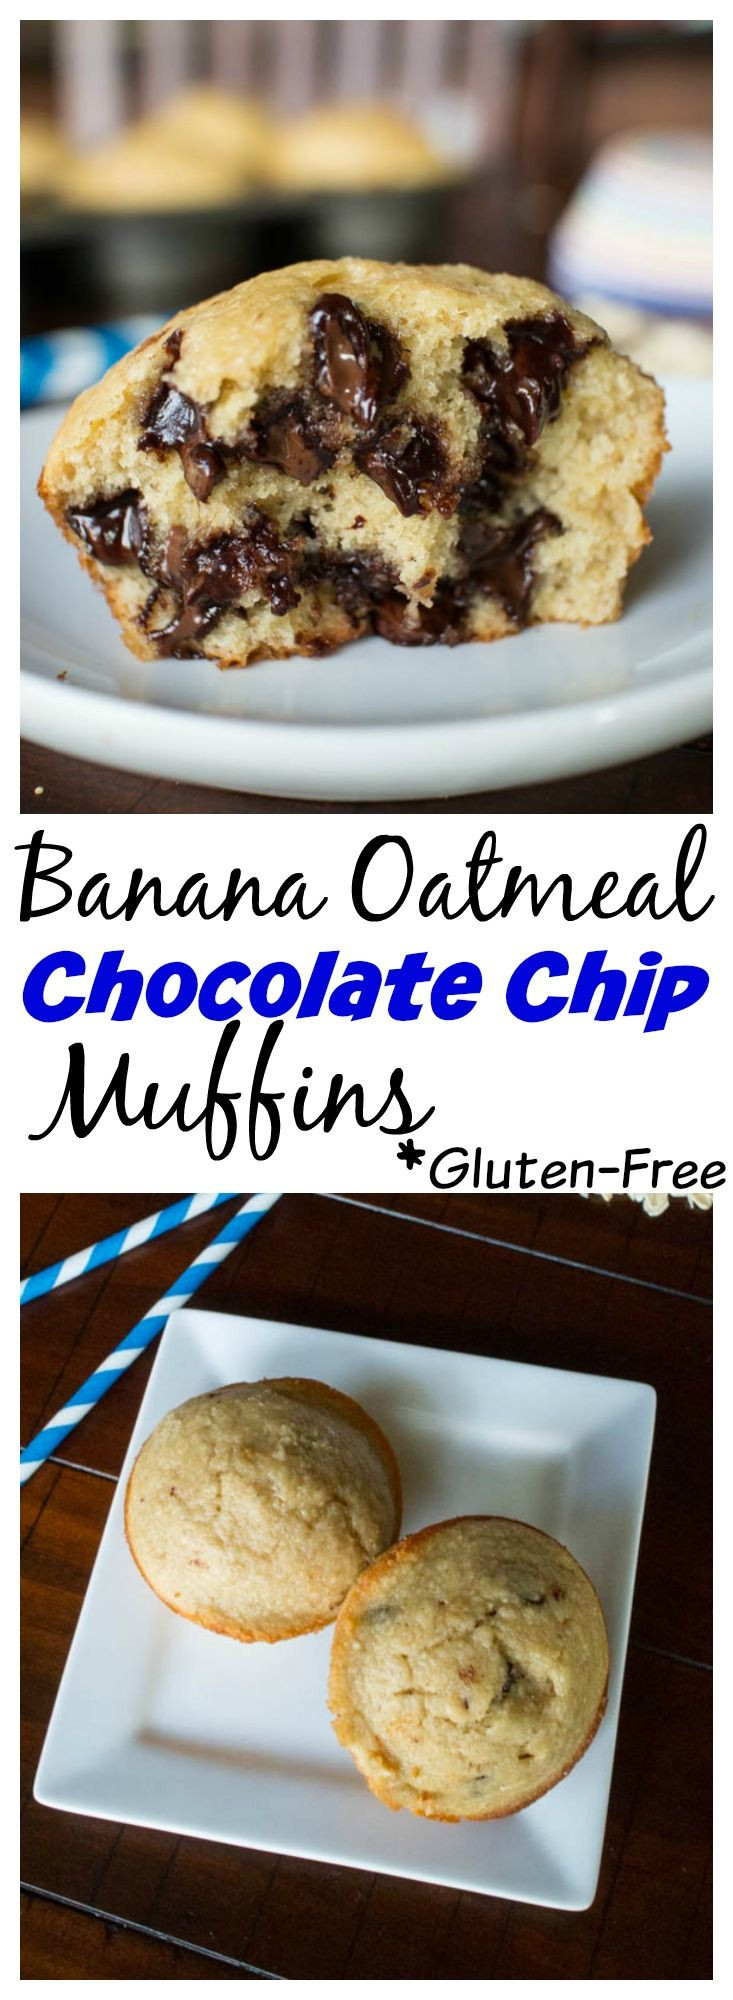 Quick Gluten Free Desserts  Quick and easy gluten free banana muffins you can make in